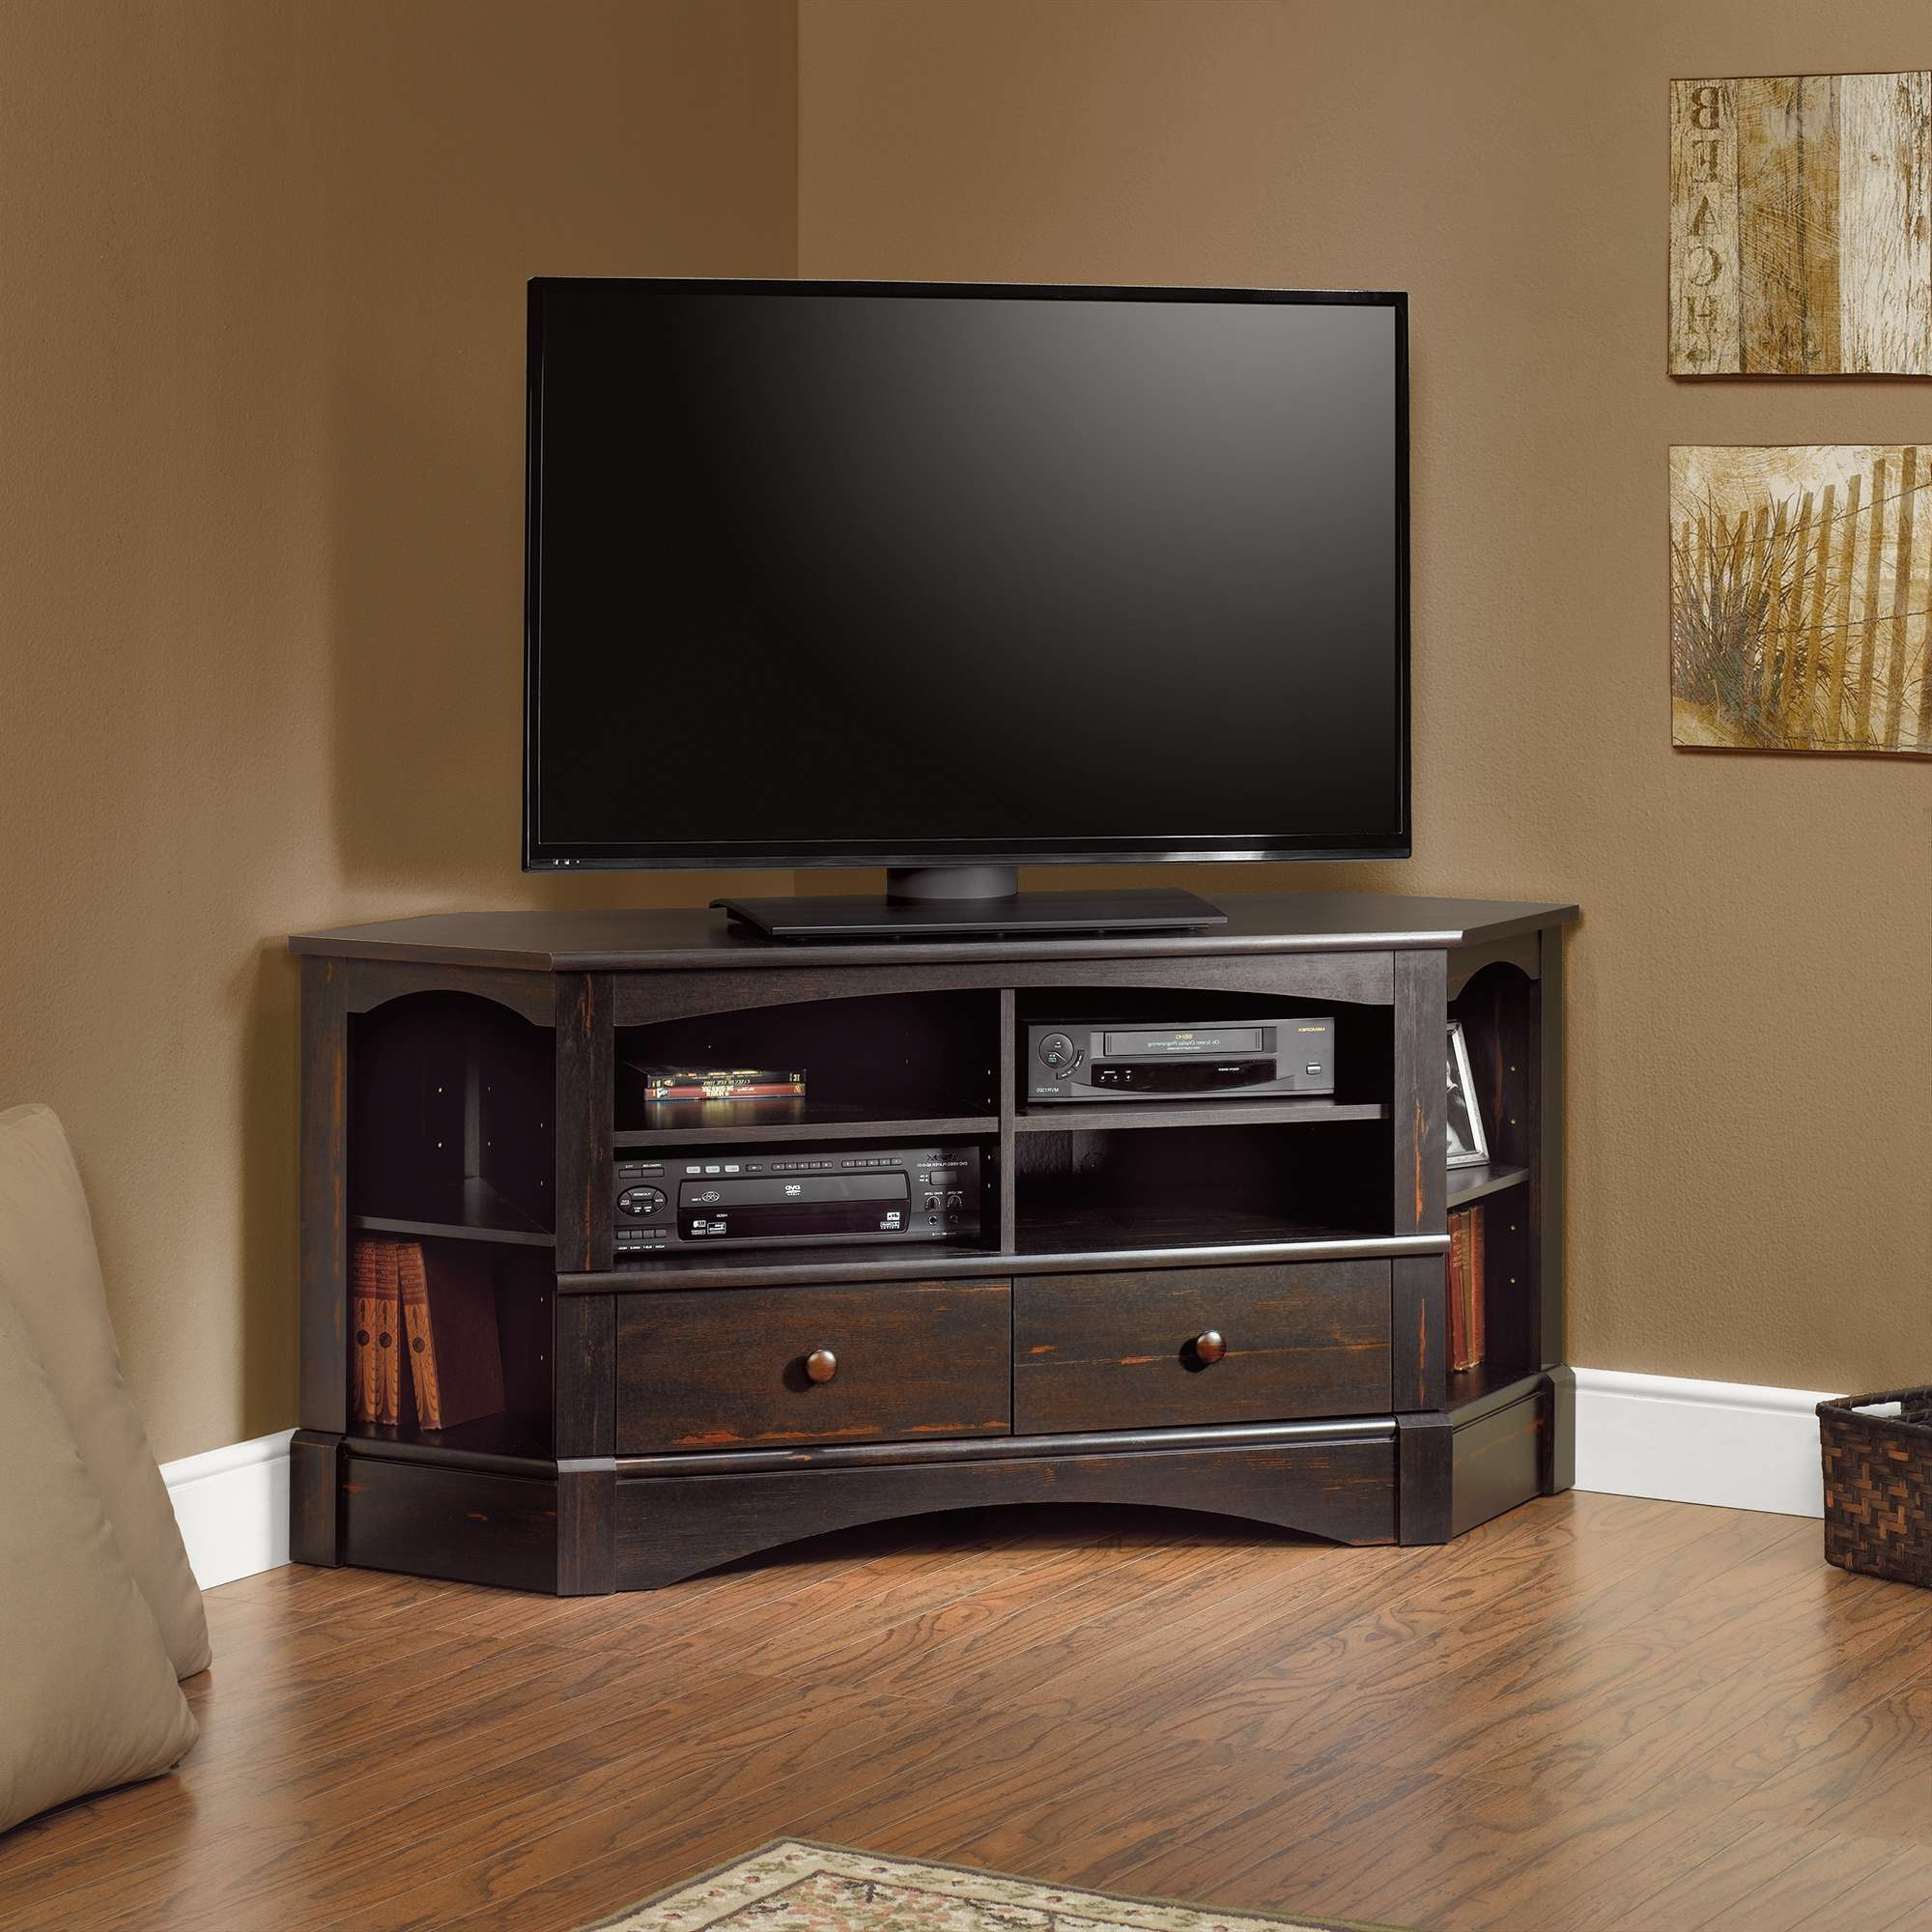 Harbor View | Corner Entertainment Credenza | 402902 | Sauder With Regard To Solid Wood Black Tv Stands (View 8 of 15)